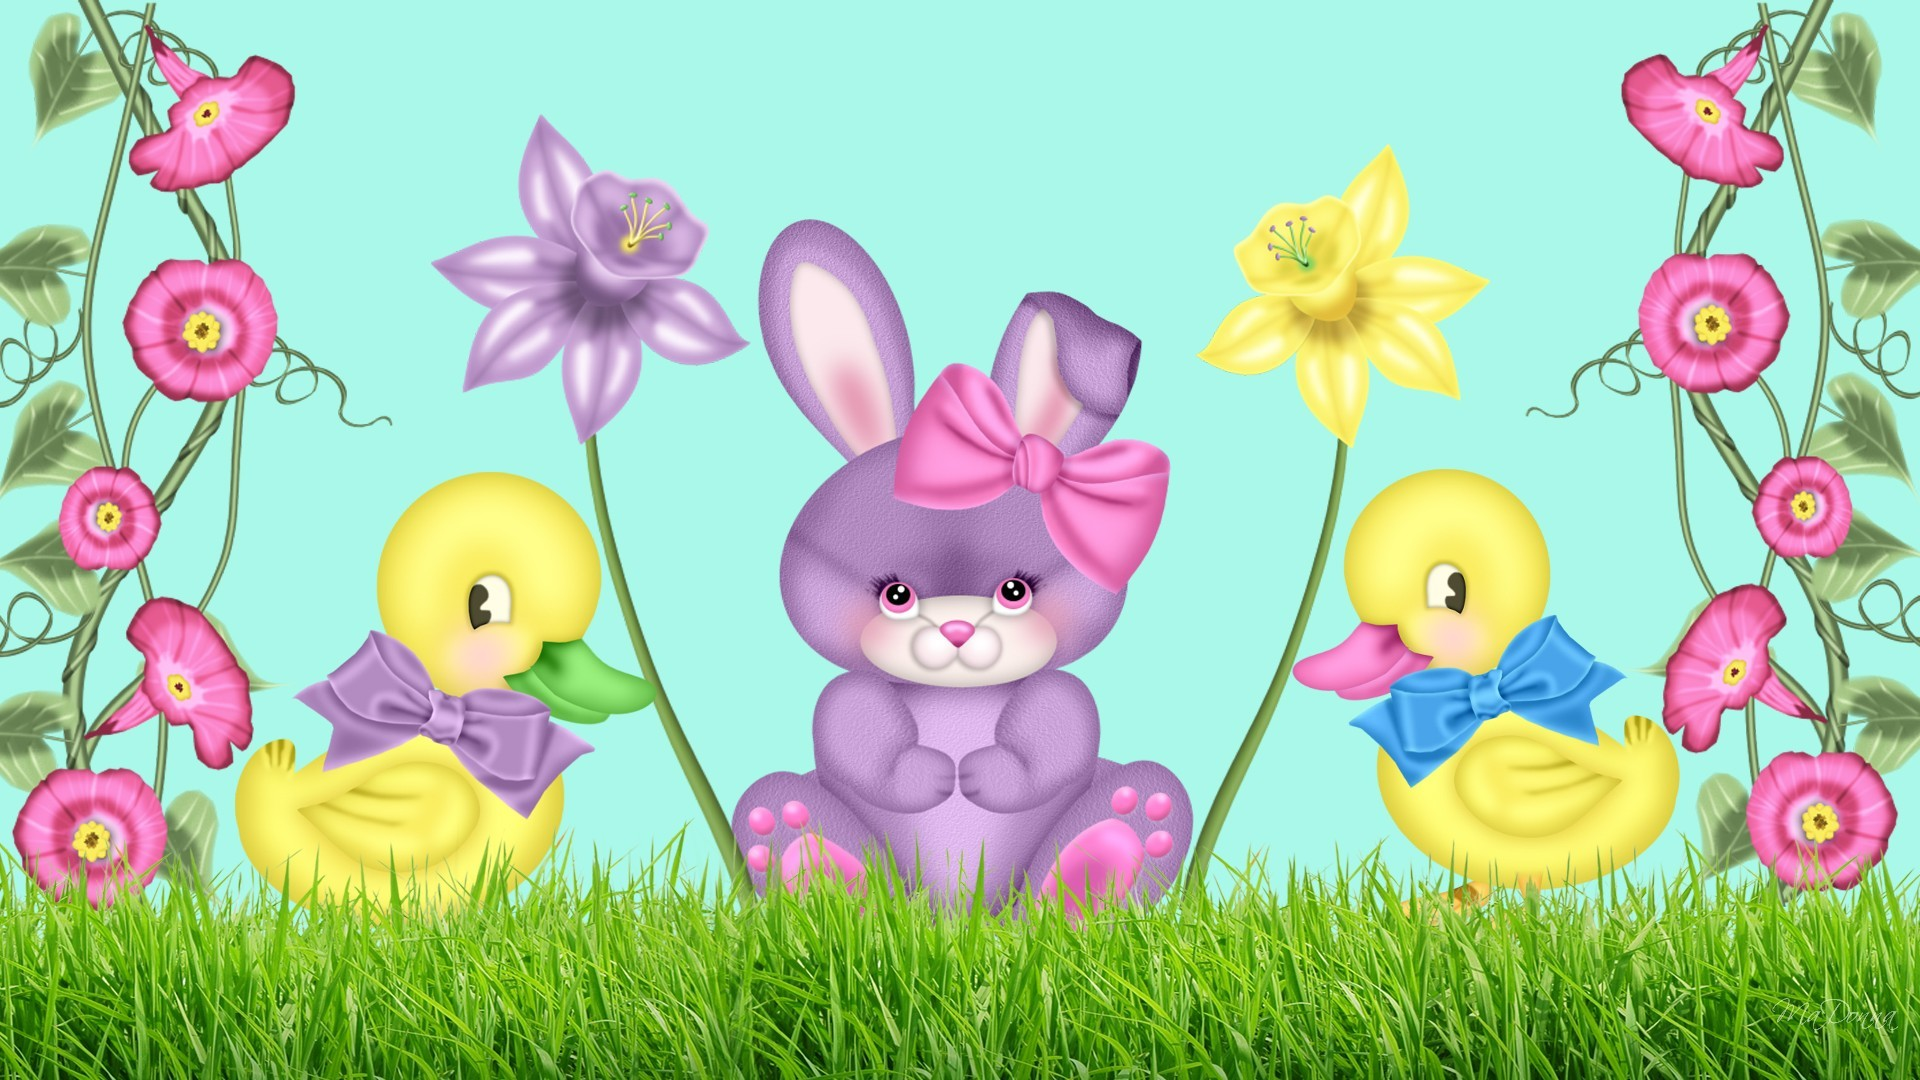 1920x1080 pin Wallpaper clipart easter #4